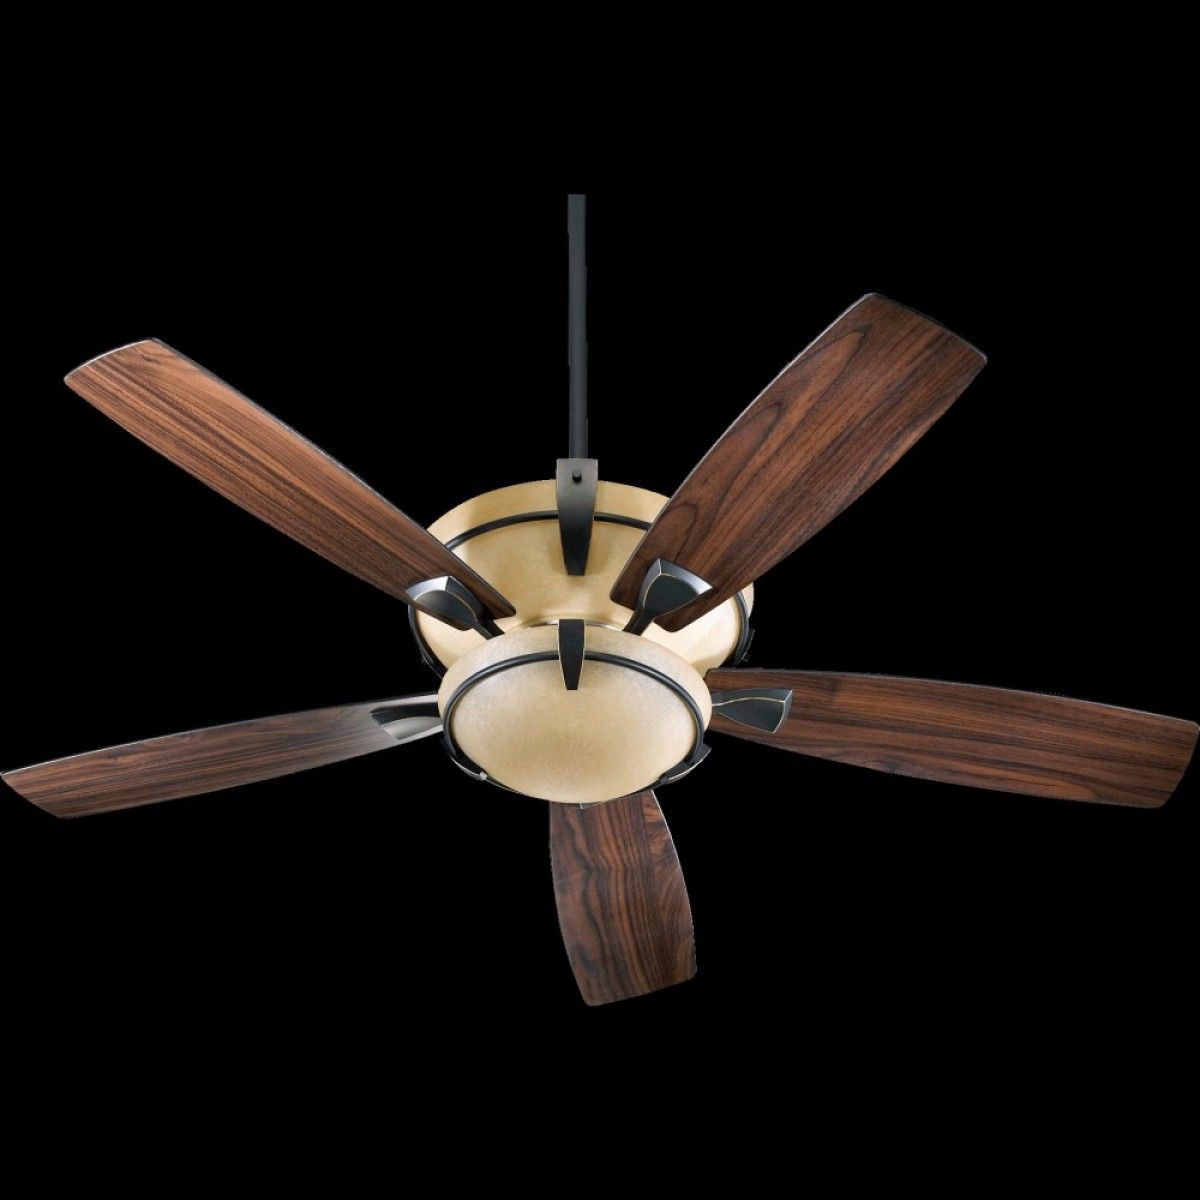 Ceiling Charming Ceiling Fans With Uplights Uplight Ceiling Fan Lowes 5 Wood Fans White Lamp Ball Black Hanger Amusing Ceiling Fan Ceiling Best Ceiling Fans